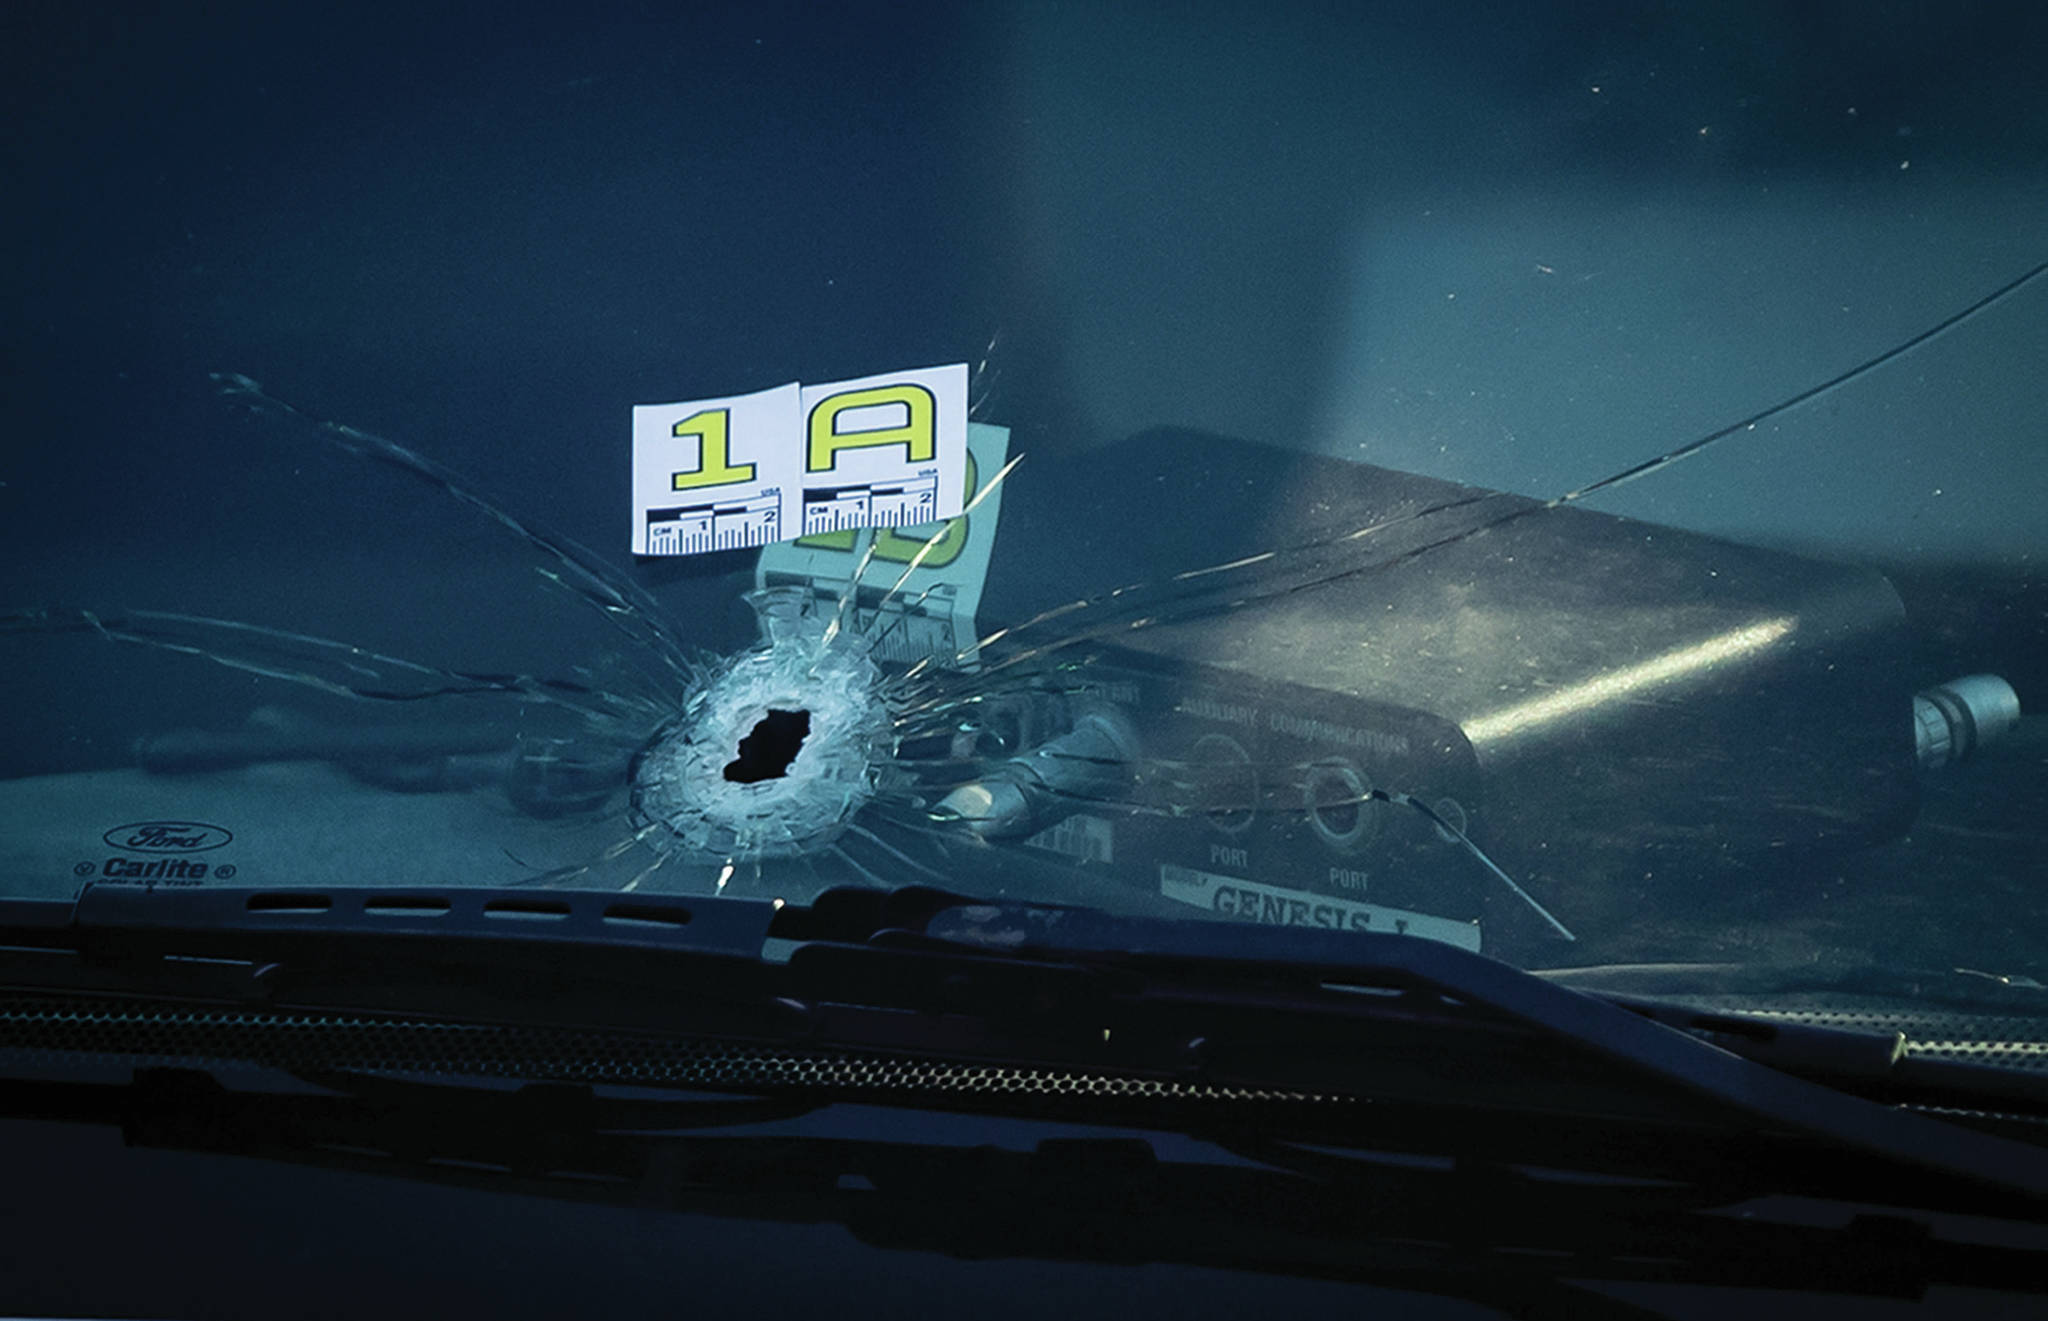 A bullet hole is seen in the windshield of an RCMP vehicle approximately 4 km from Vancouver International Airport after a one person was killed during a shooting outside the international departures terminal at the airport, in Richmond, B.C., Sunday, May 9, 2021. THE CANADIAN PRESS/Darryl Dyck